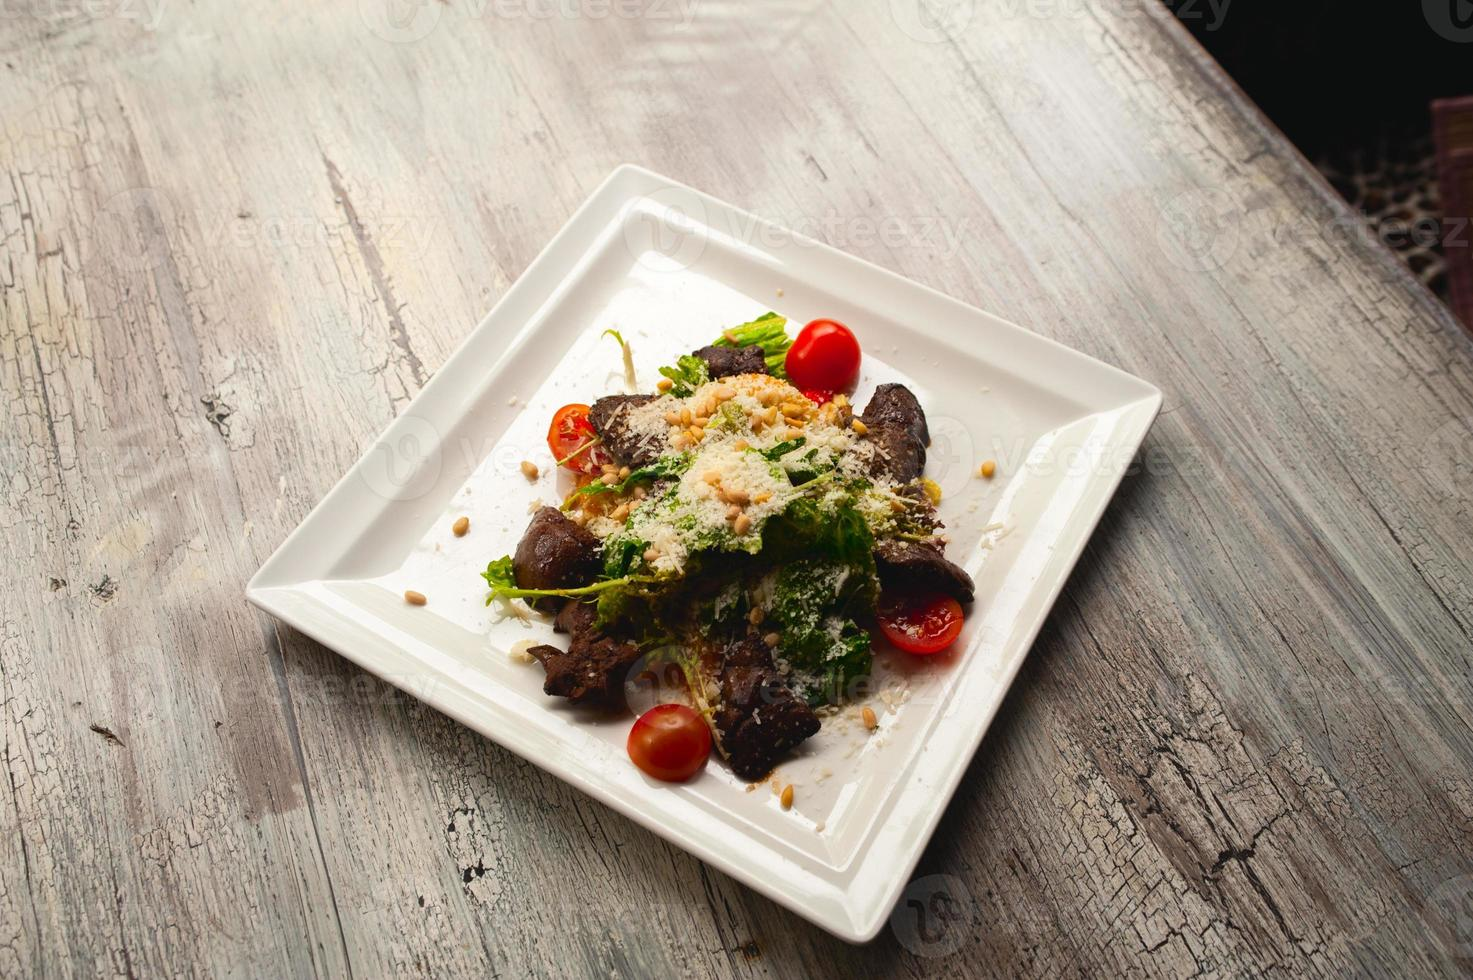 Caesar salad with meat, leafs and tomatoes on white plate photo